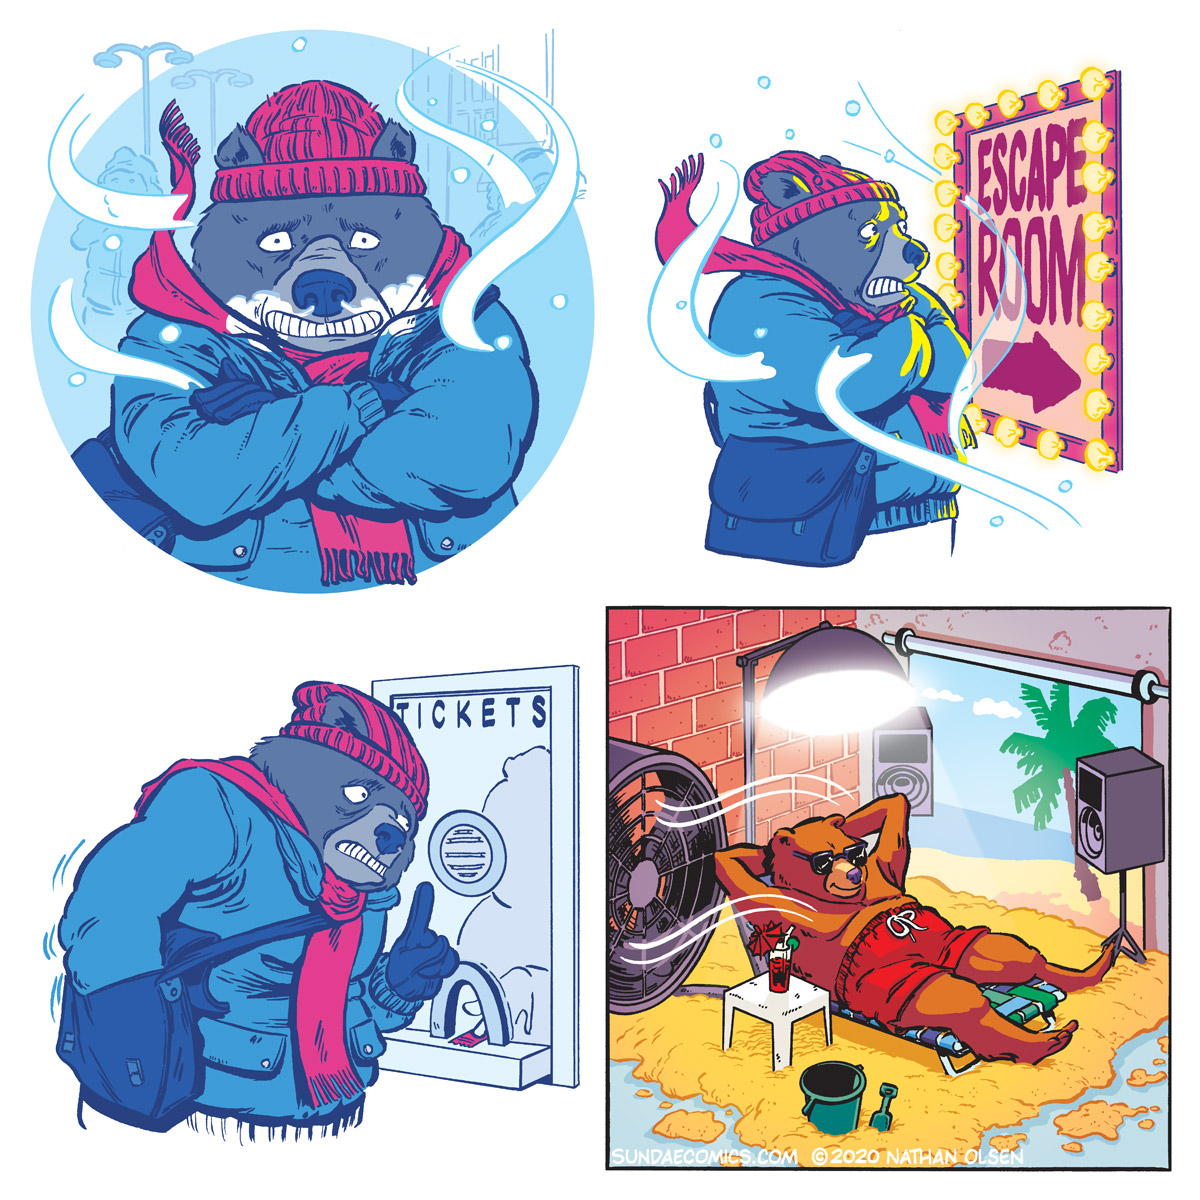 A webcomic about a bear that buys a ticket for an Escape Room experience.